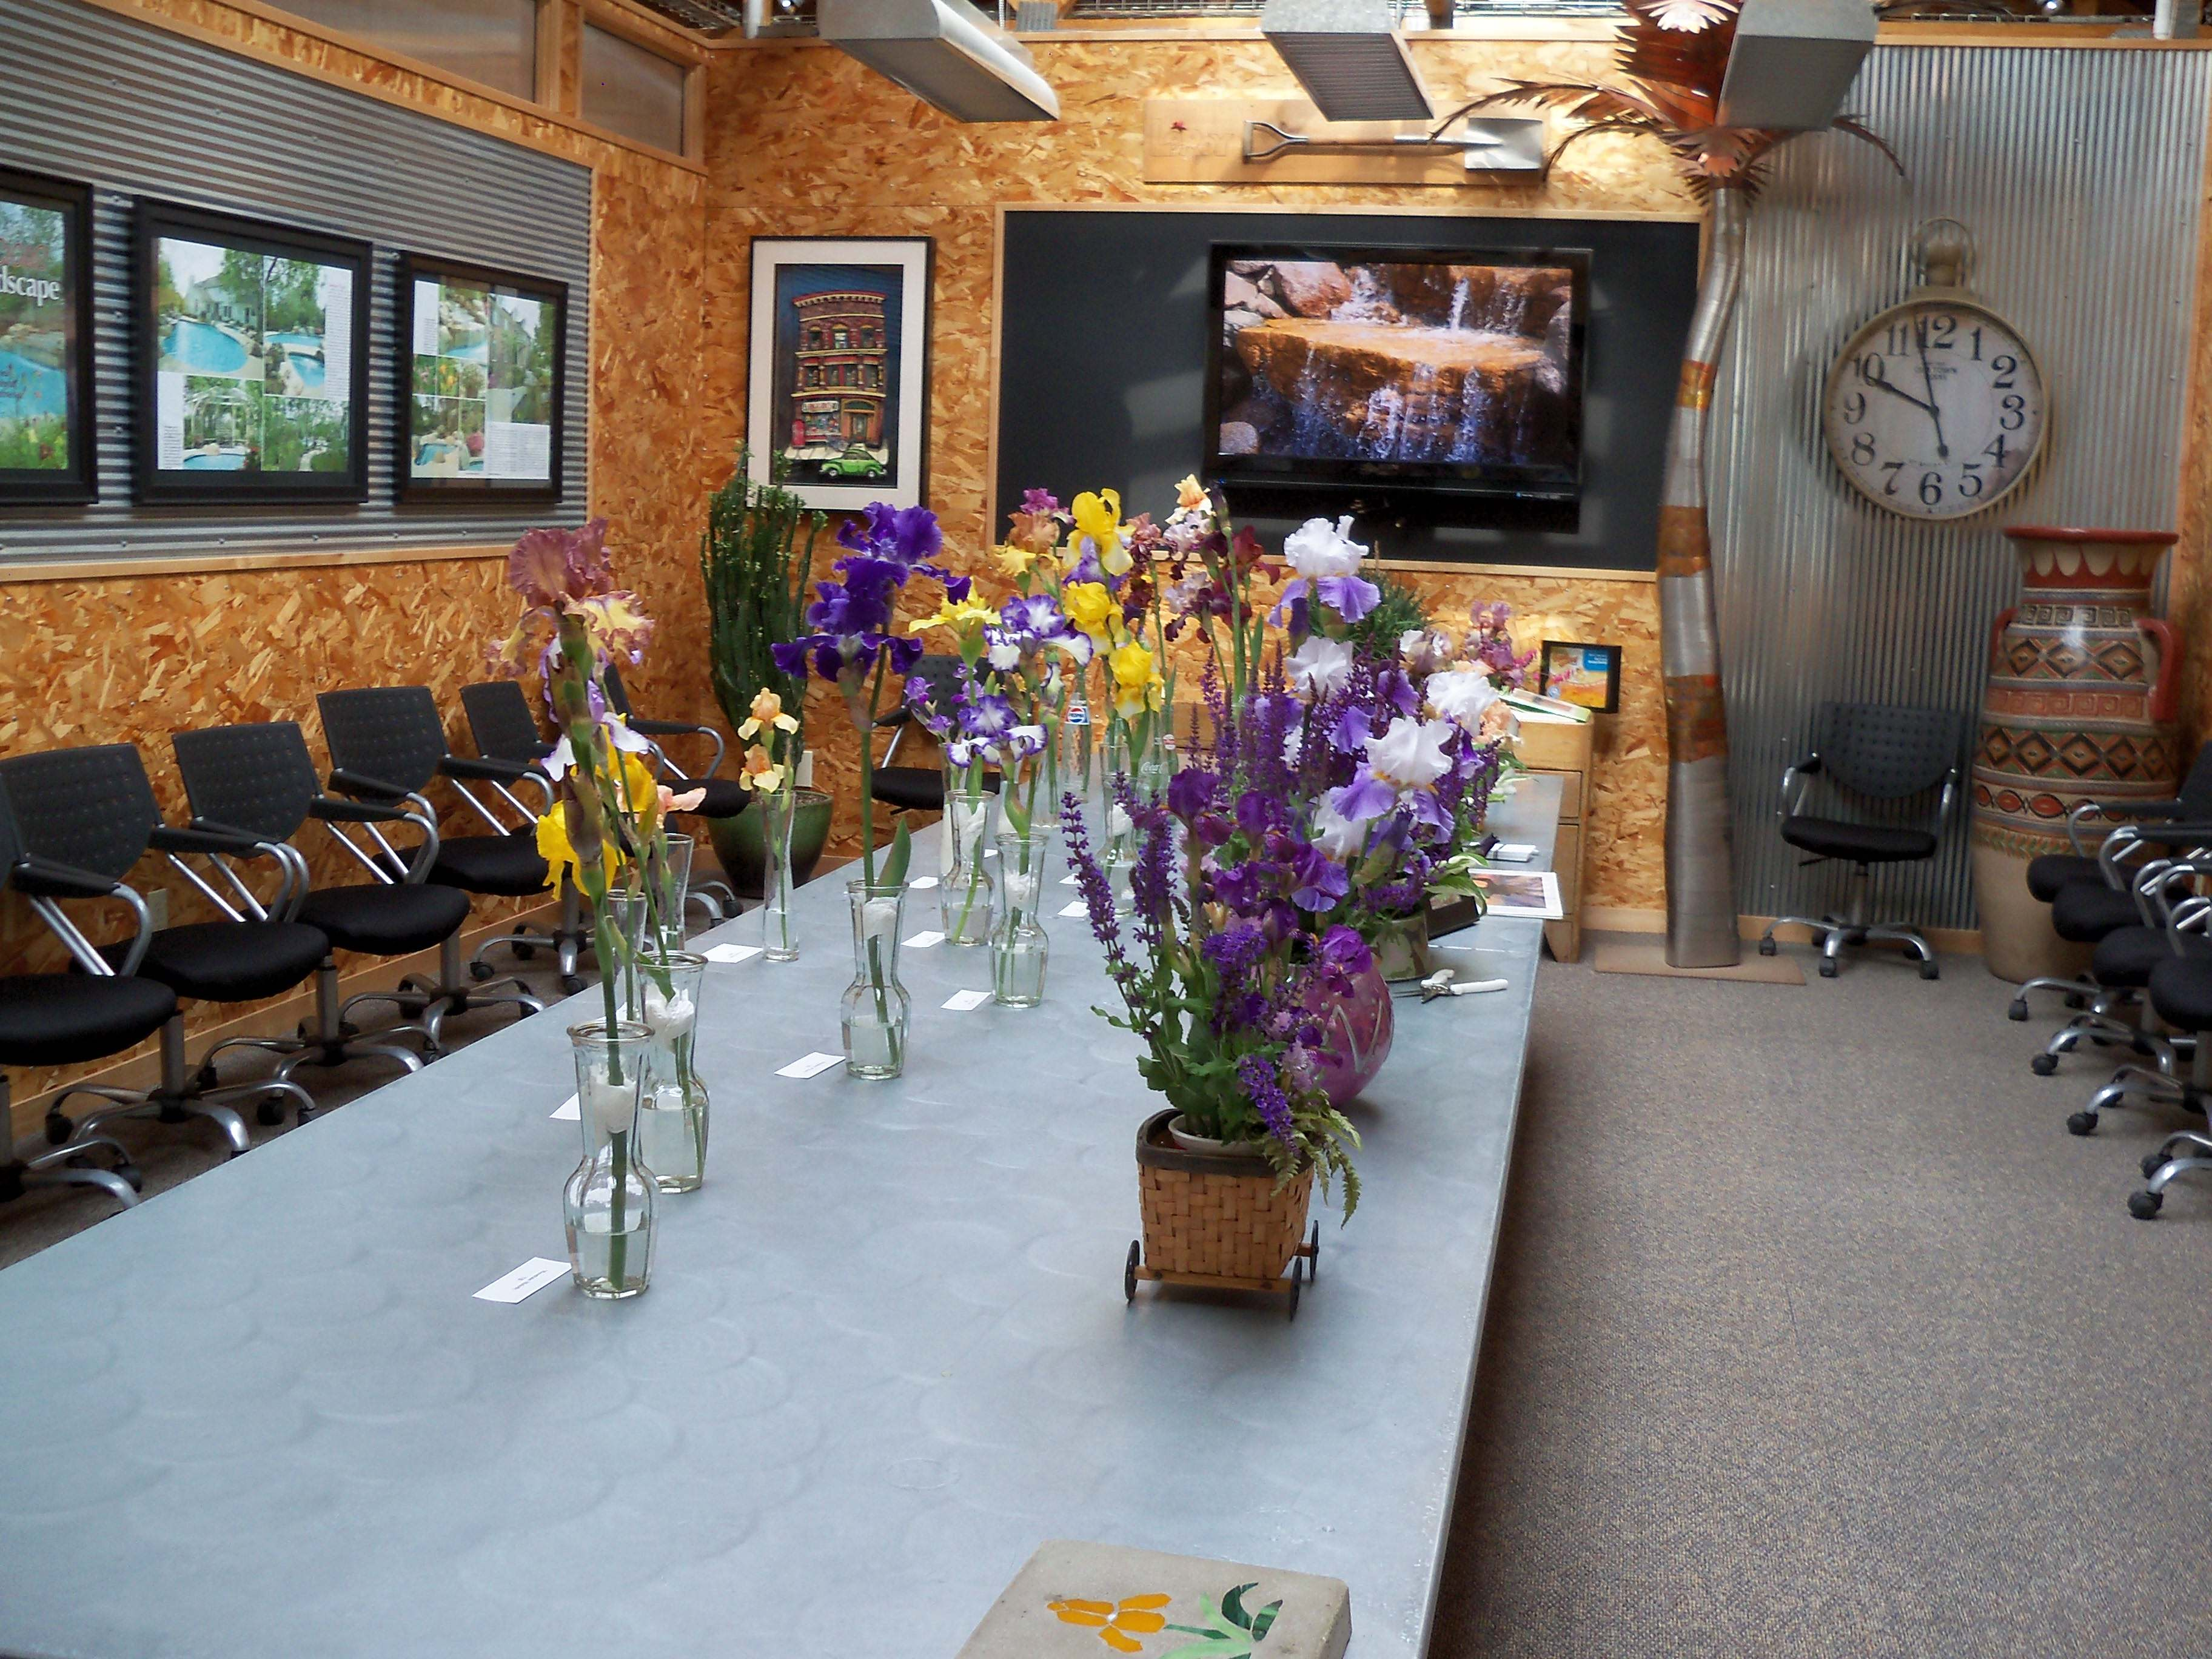 Even Though We Donu0027t Have A Region 21 Affiliate Iris Club In Central Iowa  (yet), You Can See Irises May 31st And June 1st At The Ted Lare Garden  Center In ...